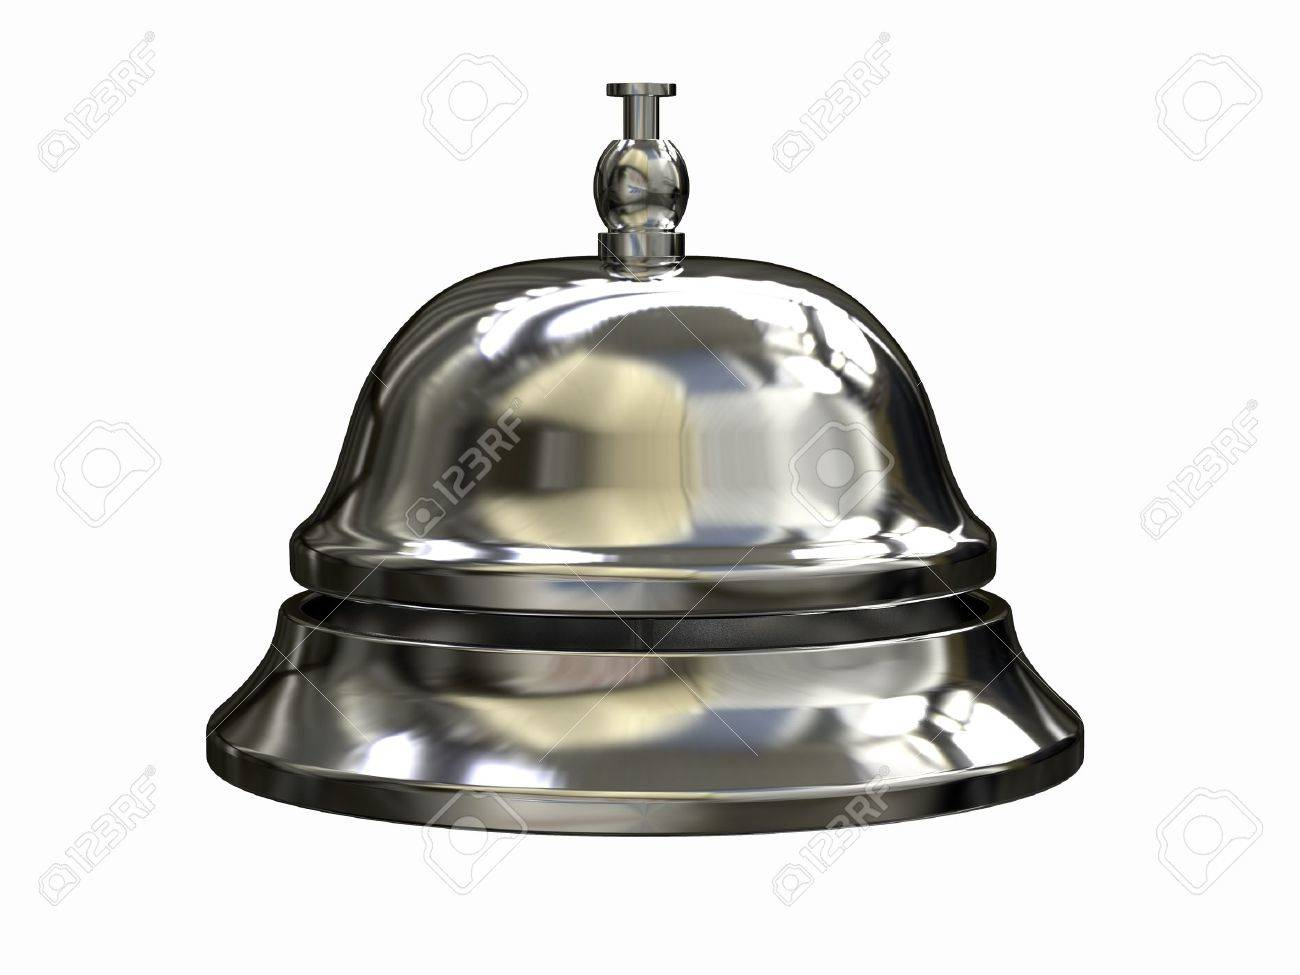 3d render of Reception bell Stock Photo - 7962646